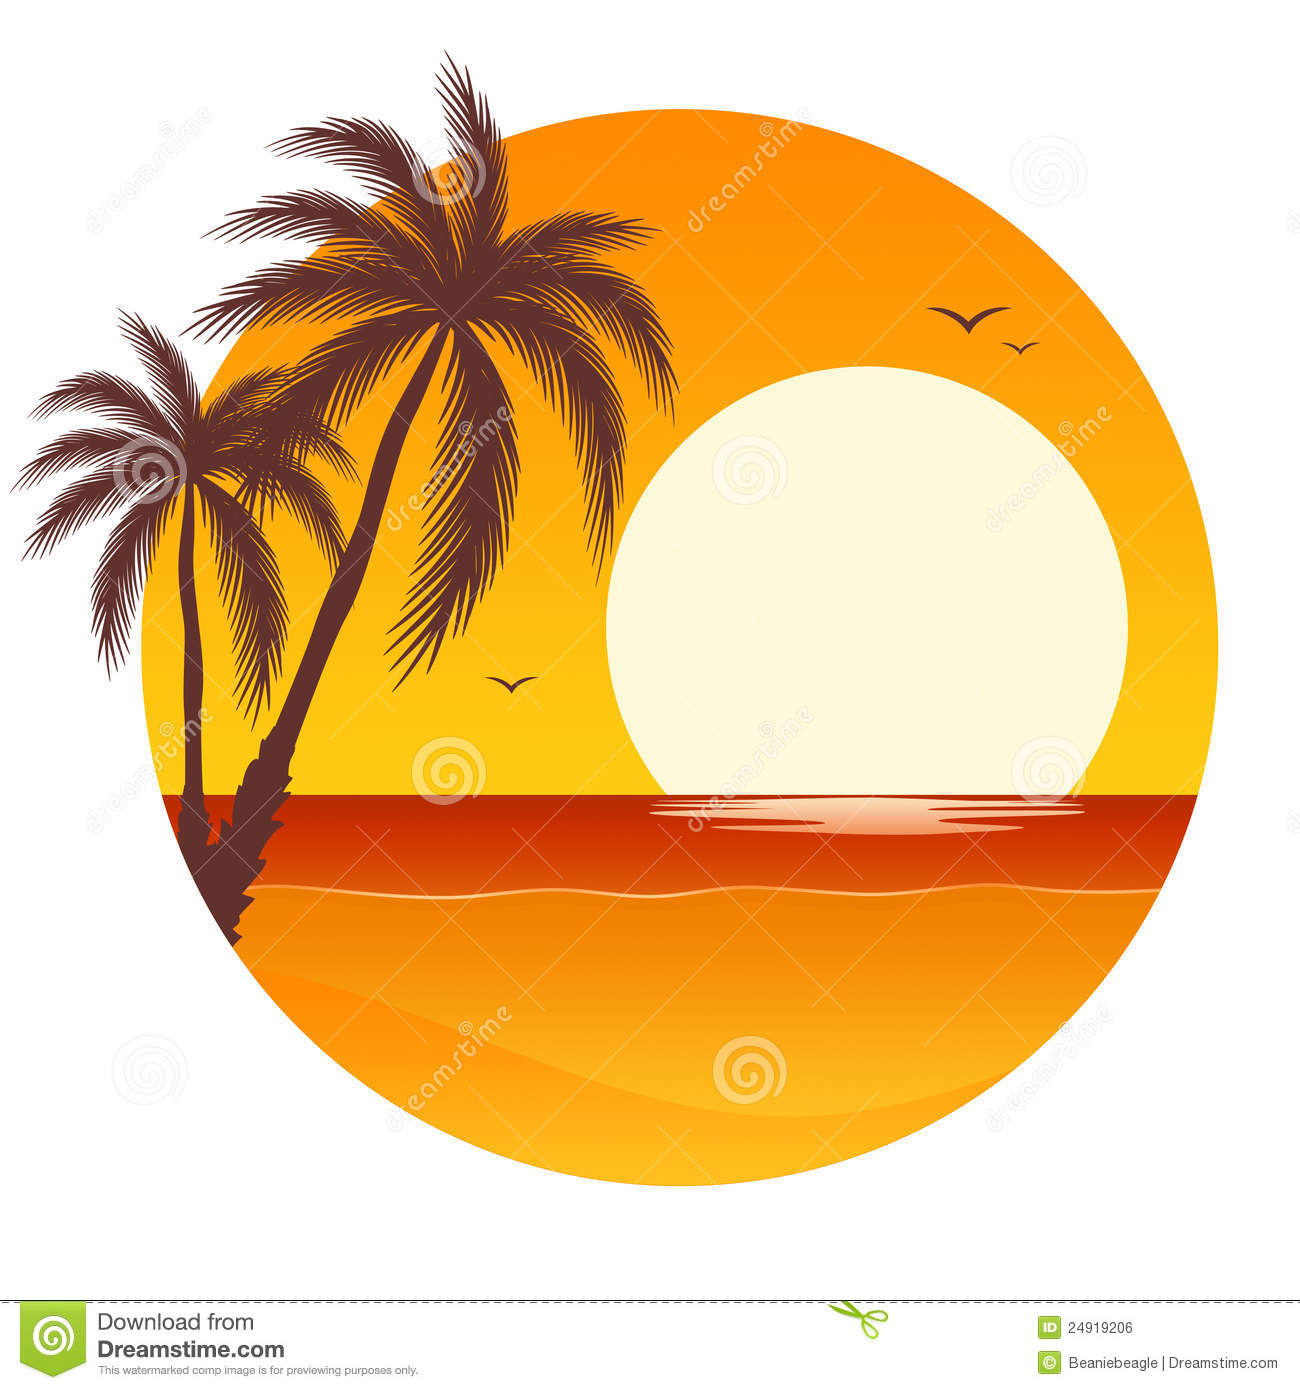 Clip Art Sunset Clipart clip art water sunset clipart kid ocean palm tree trees